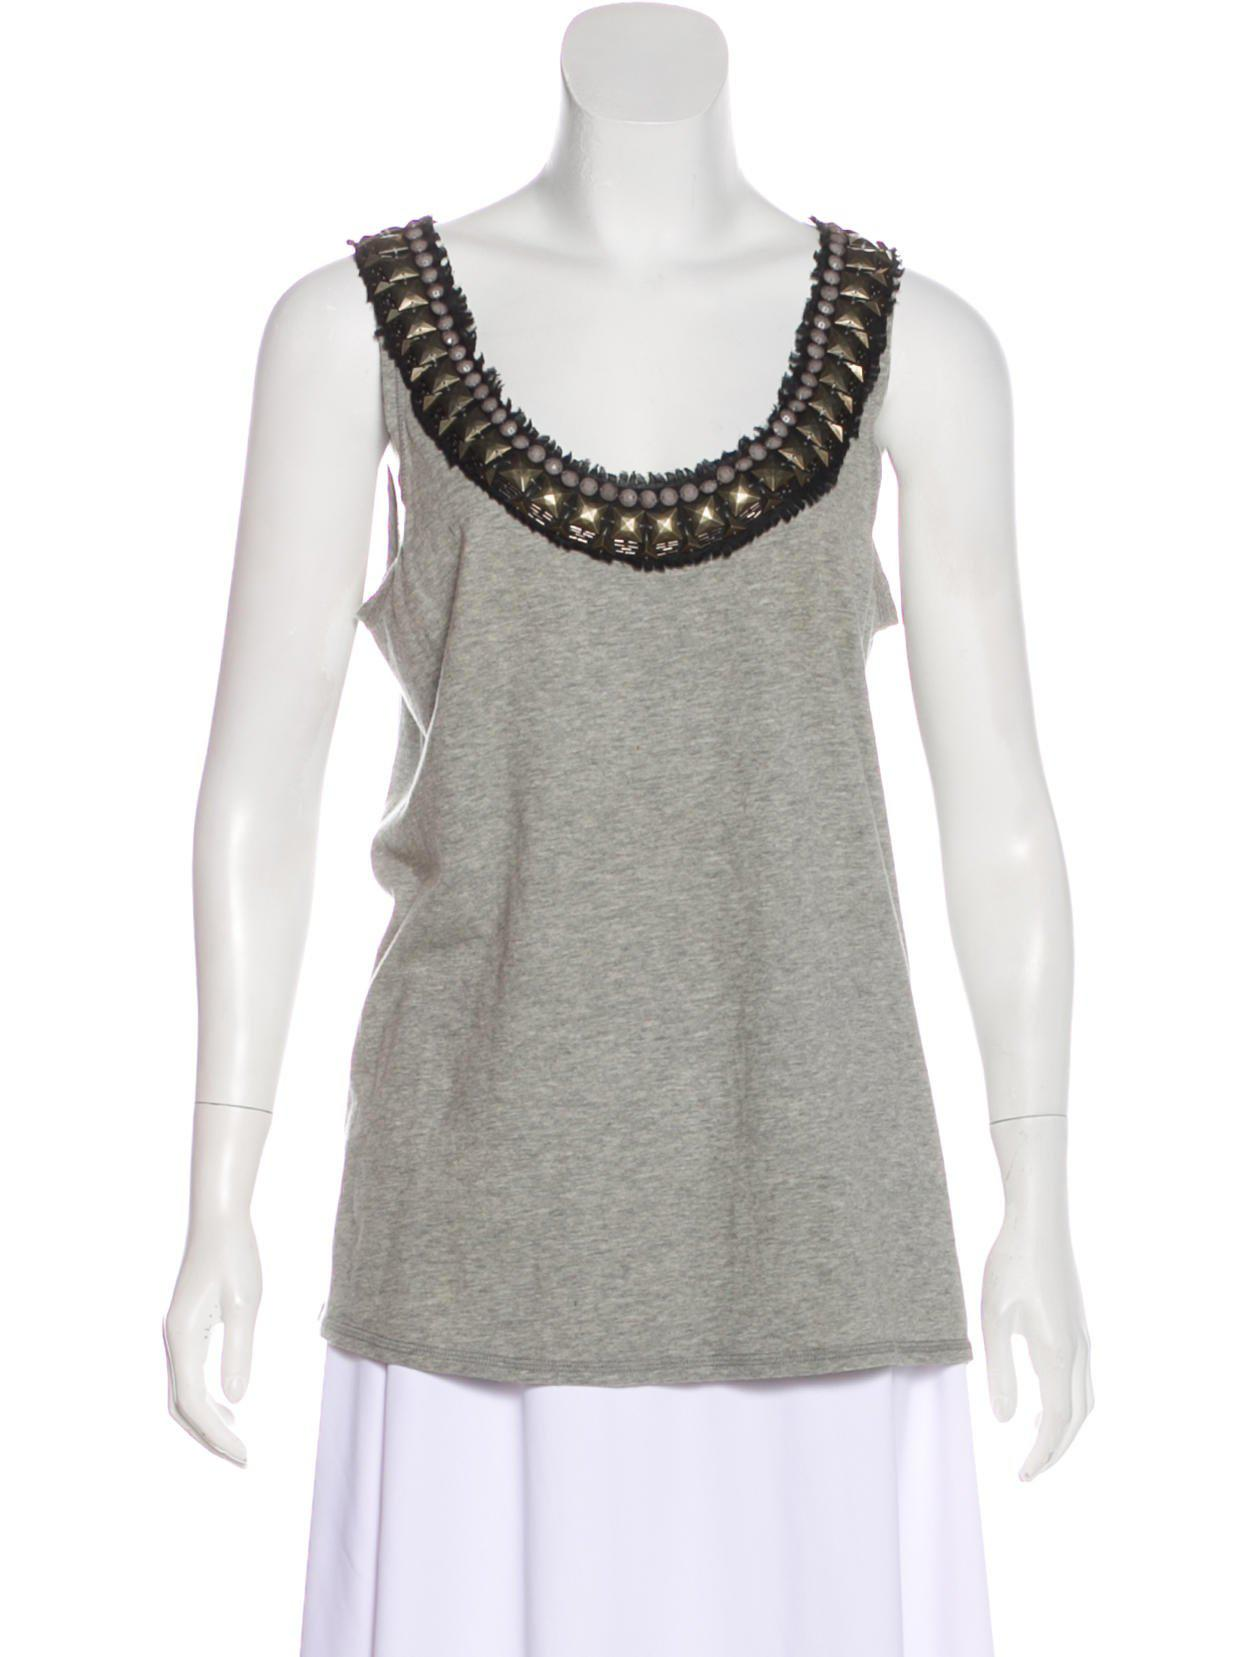 19741e1810d2 Lyst - Tory Burch Sleeveless Embellished Knit Top Grey in Gray